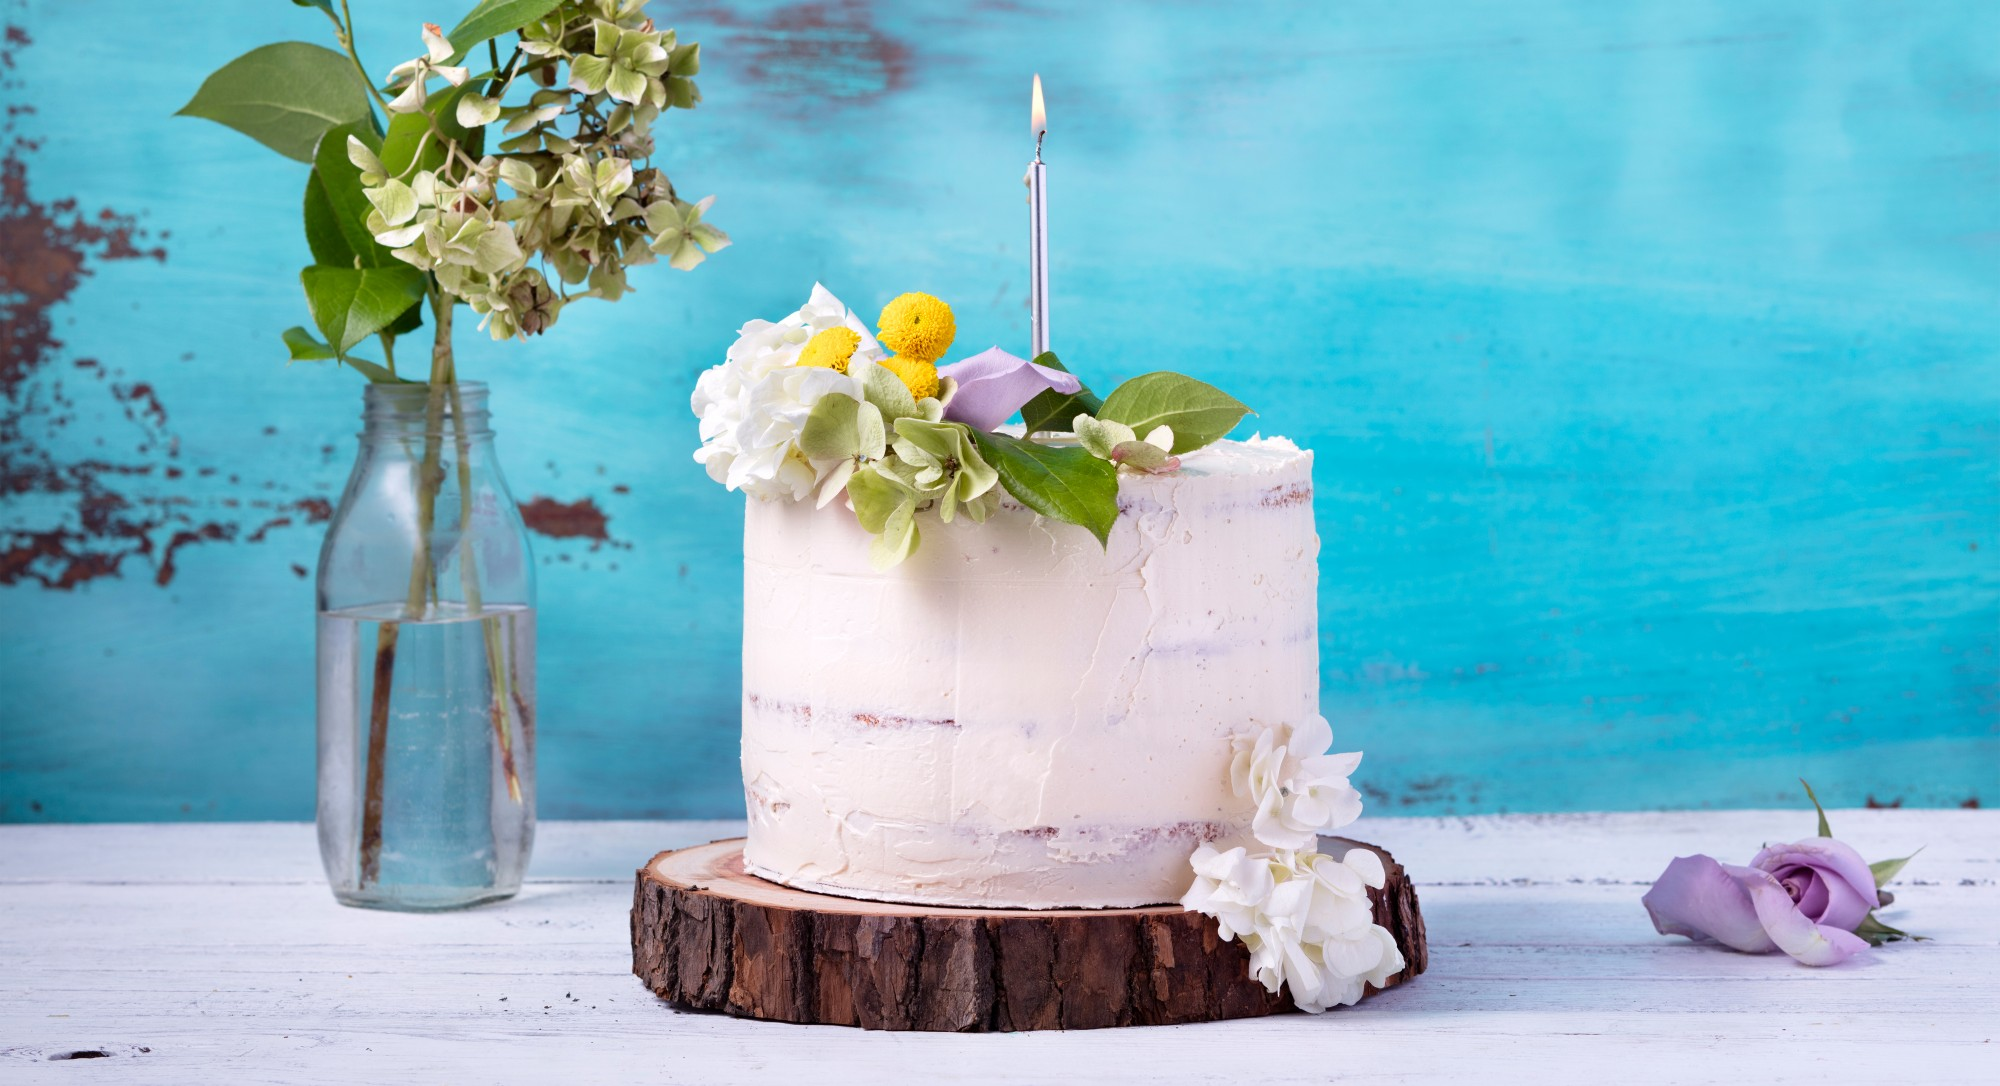 ICYMI: The Official Thrive Market Birthday Cake and Tips For Finding Your Zen